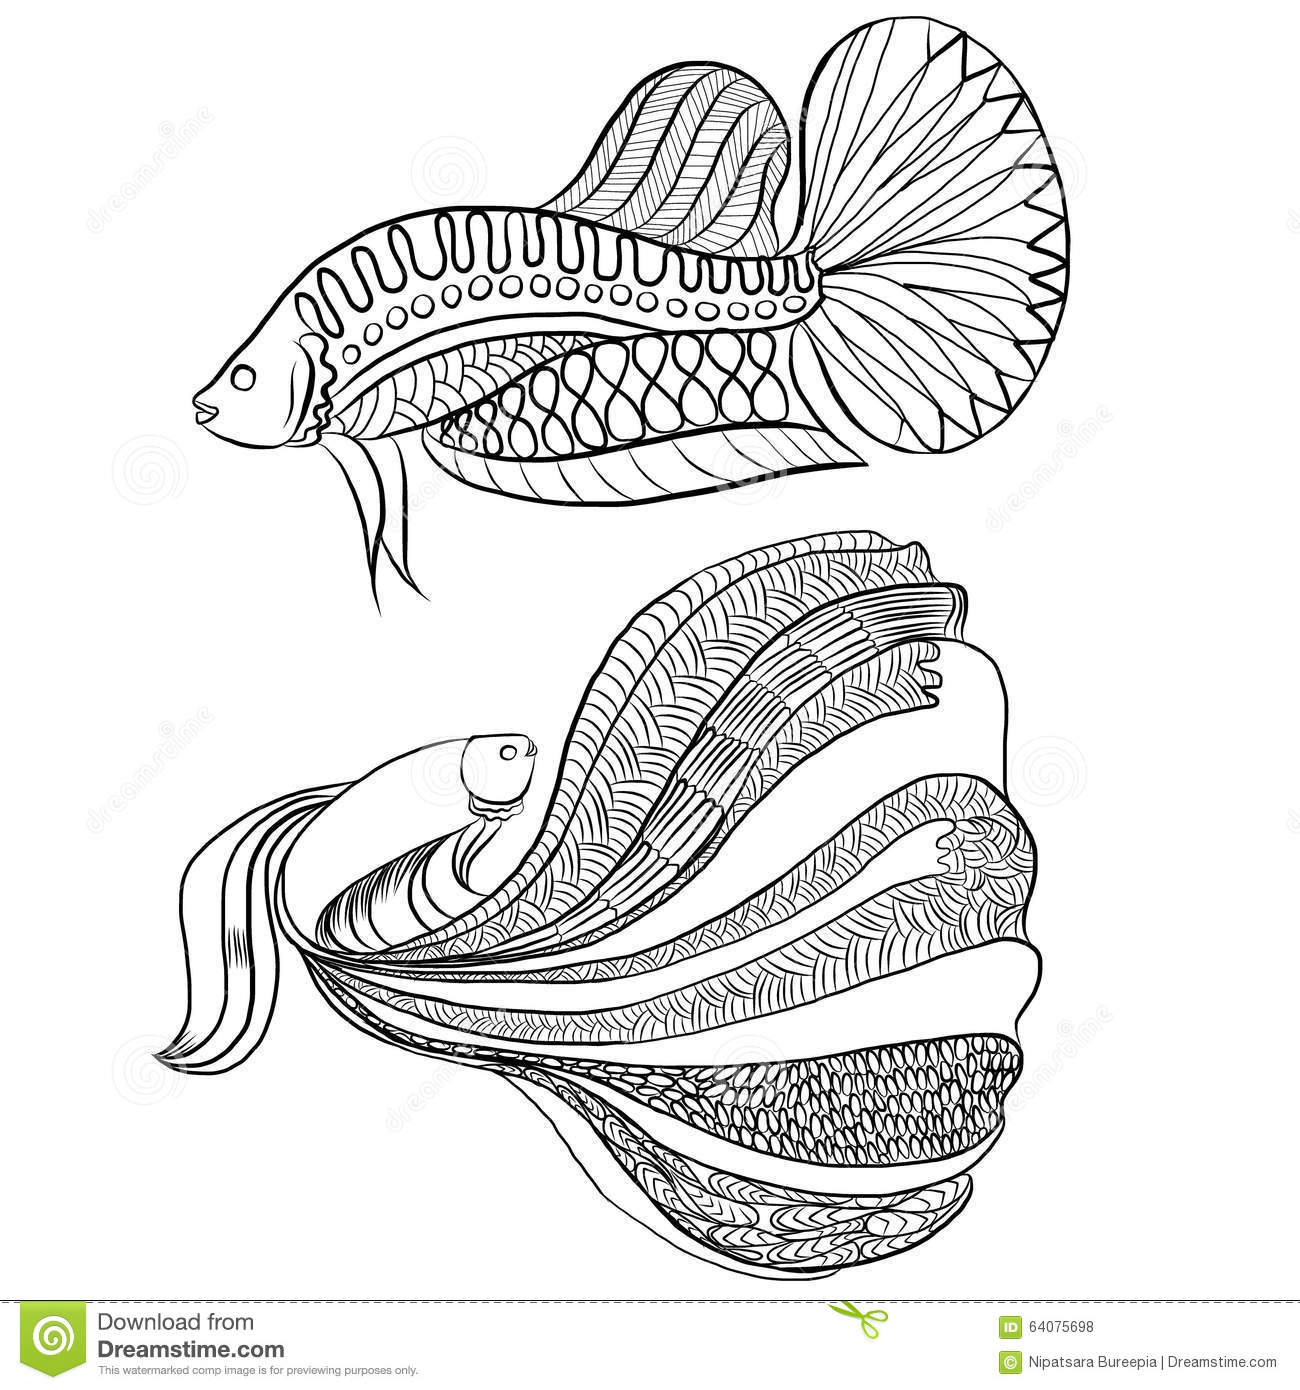 Siamese Fighting Fish clipart #18, Download drawings